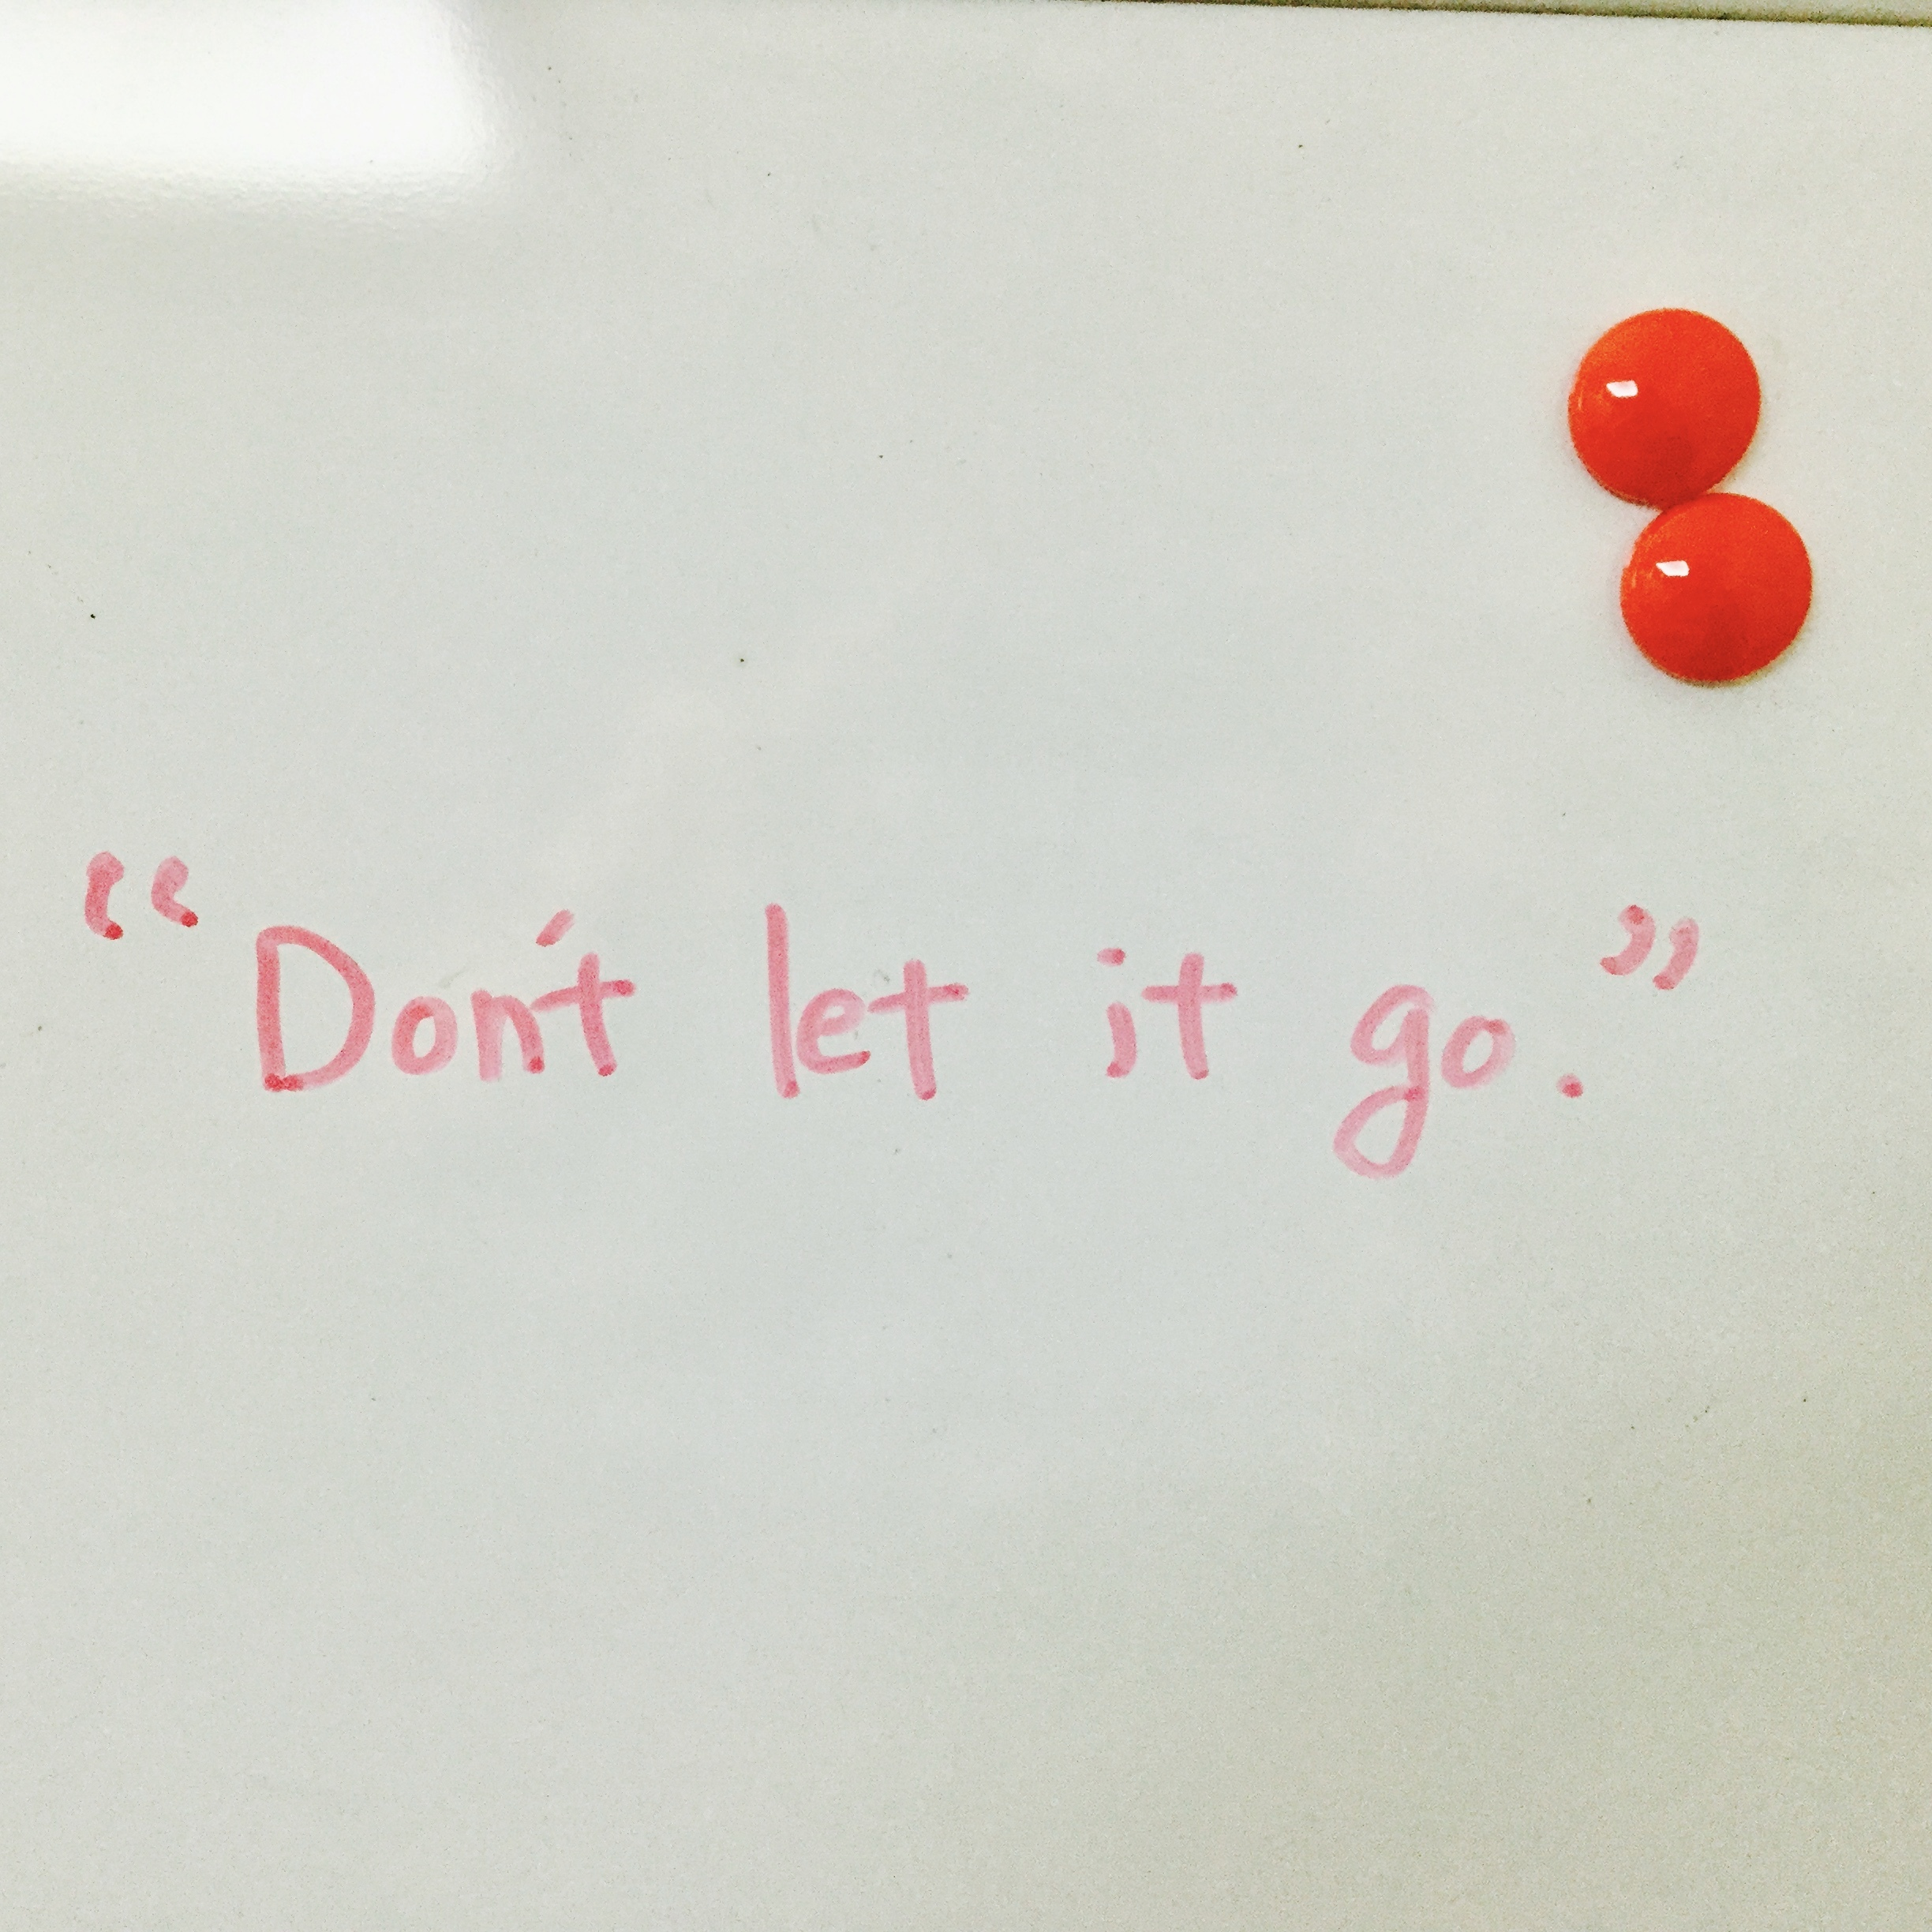 """Don't let it go"" の写真です。"